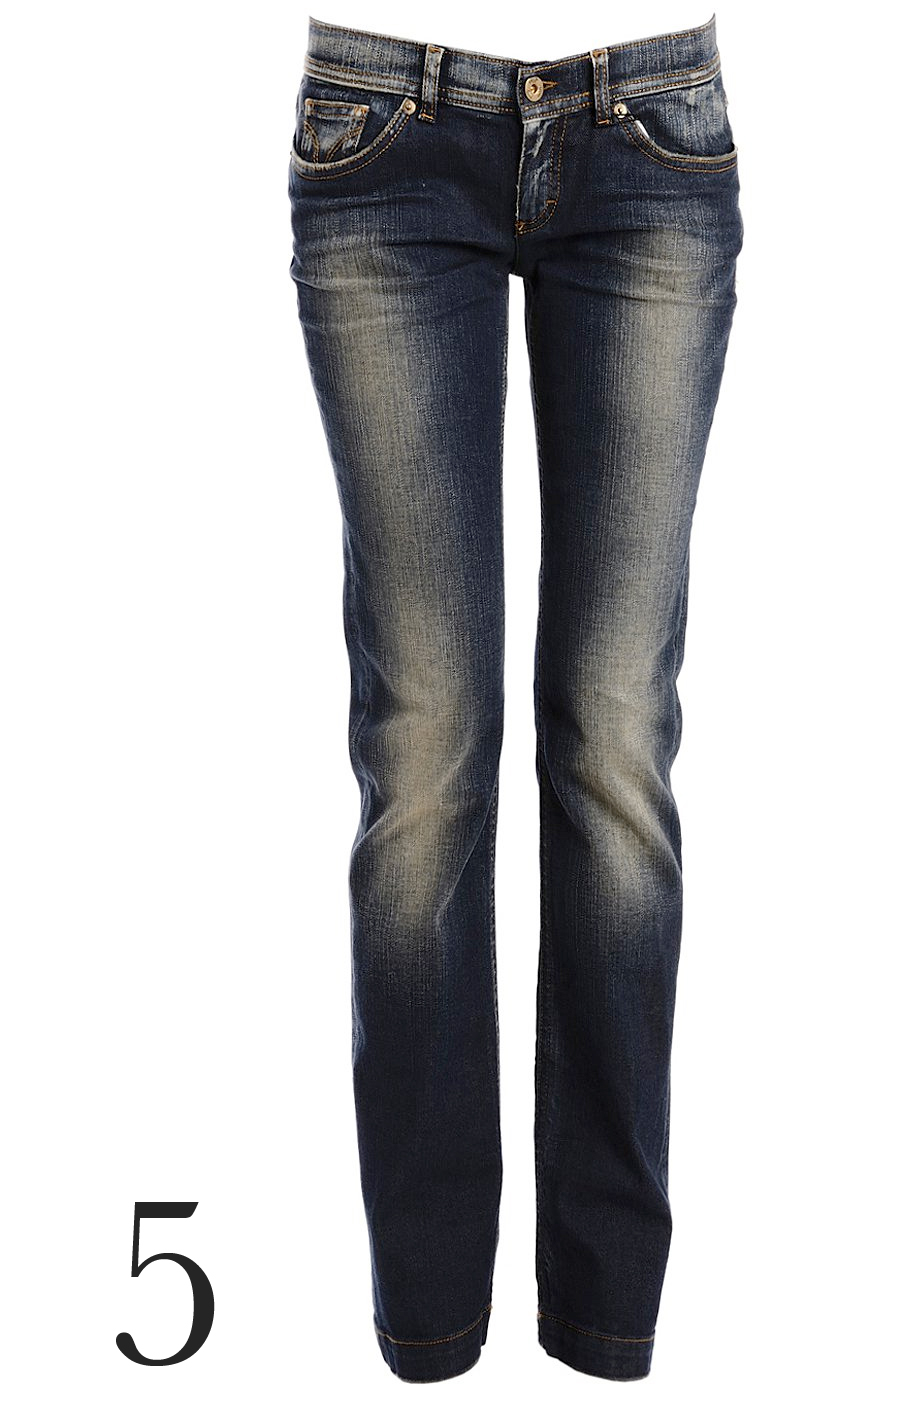 """""""A classic pair of jeans you'll reach for again and again. Pair with a statement tee and leather boots by day or simply add heels for an edgy evening look."""""""